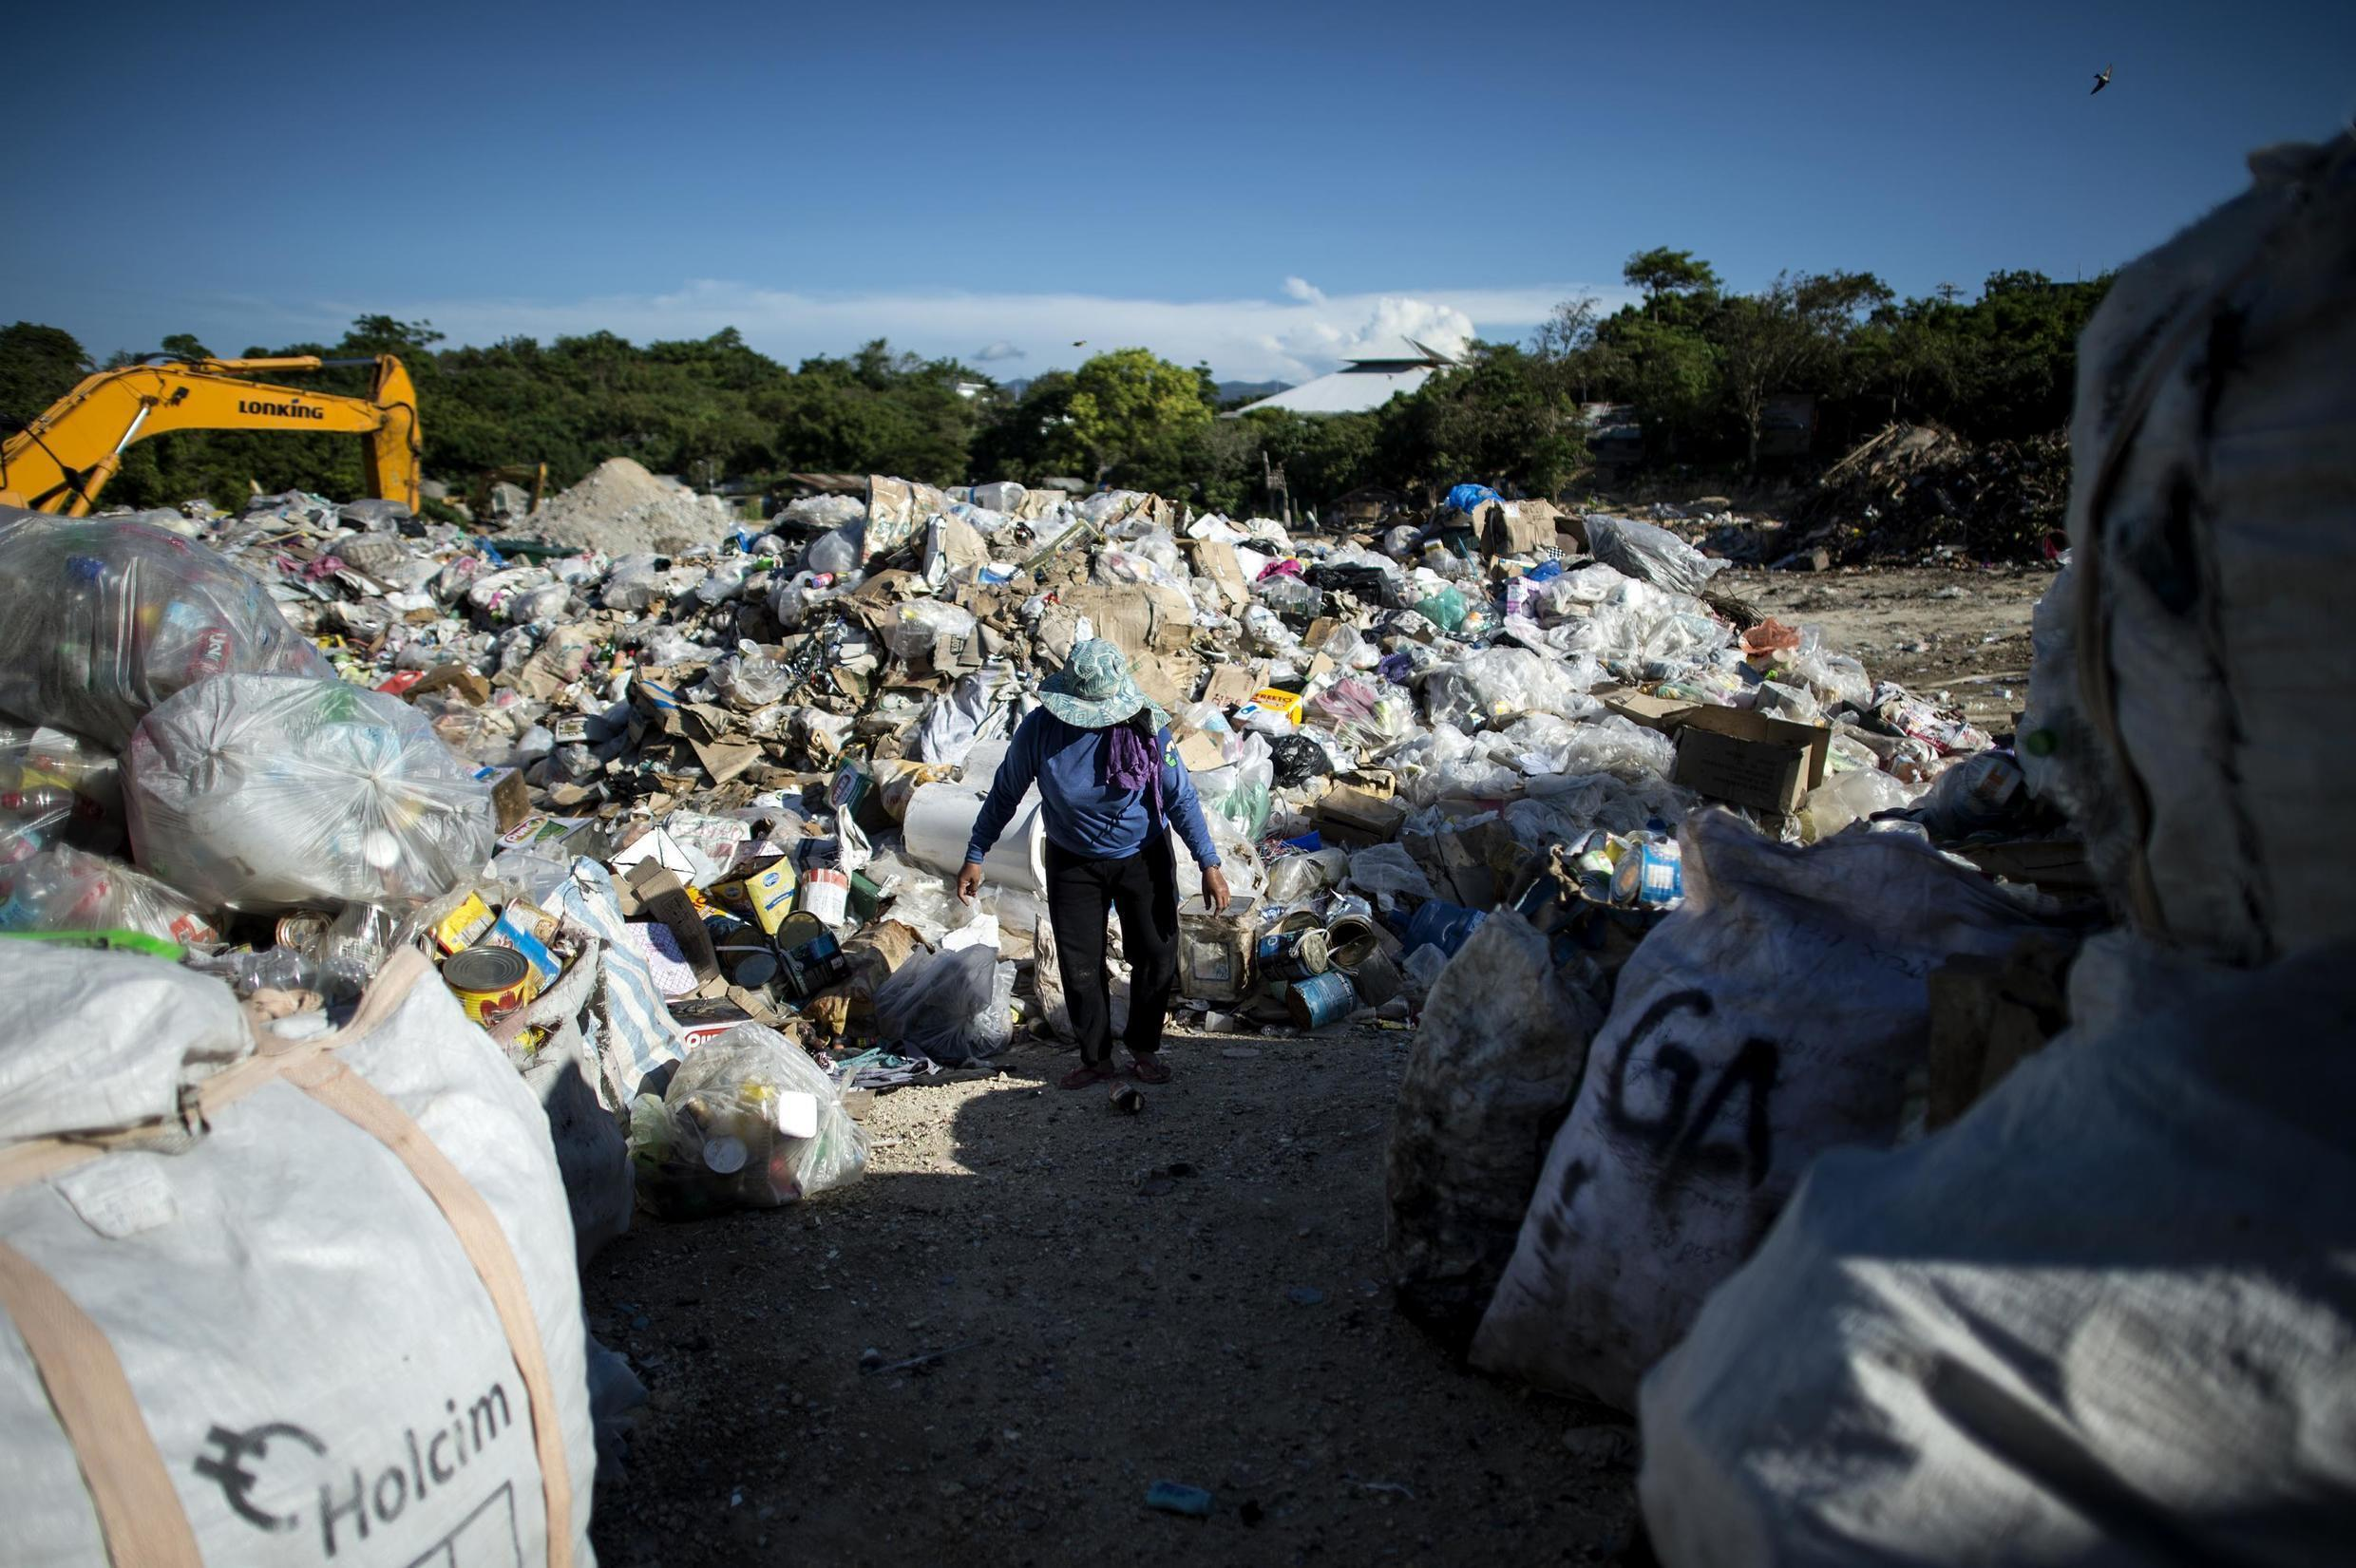 """Gina Galan, 45, collects plastic bottles on the Boracay dumpsite called """"materials recovery facility (MRF)"""" in the Philippine island of Boracay on April 25, 2018."""